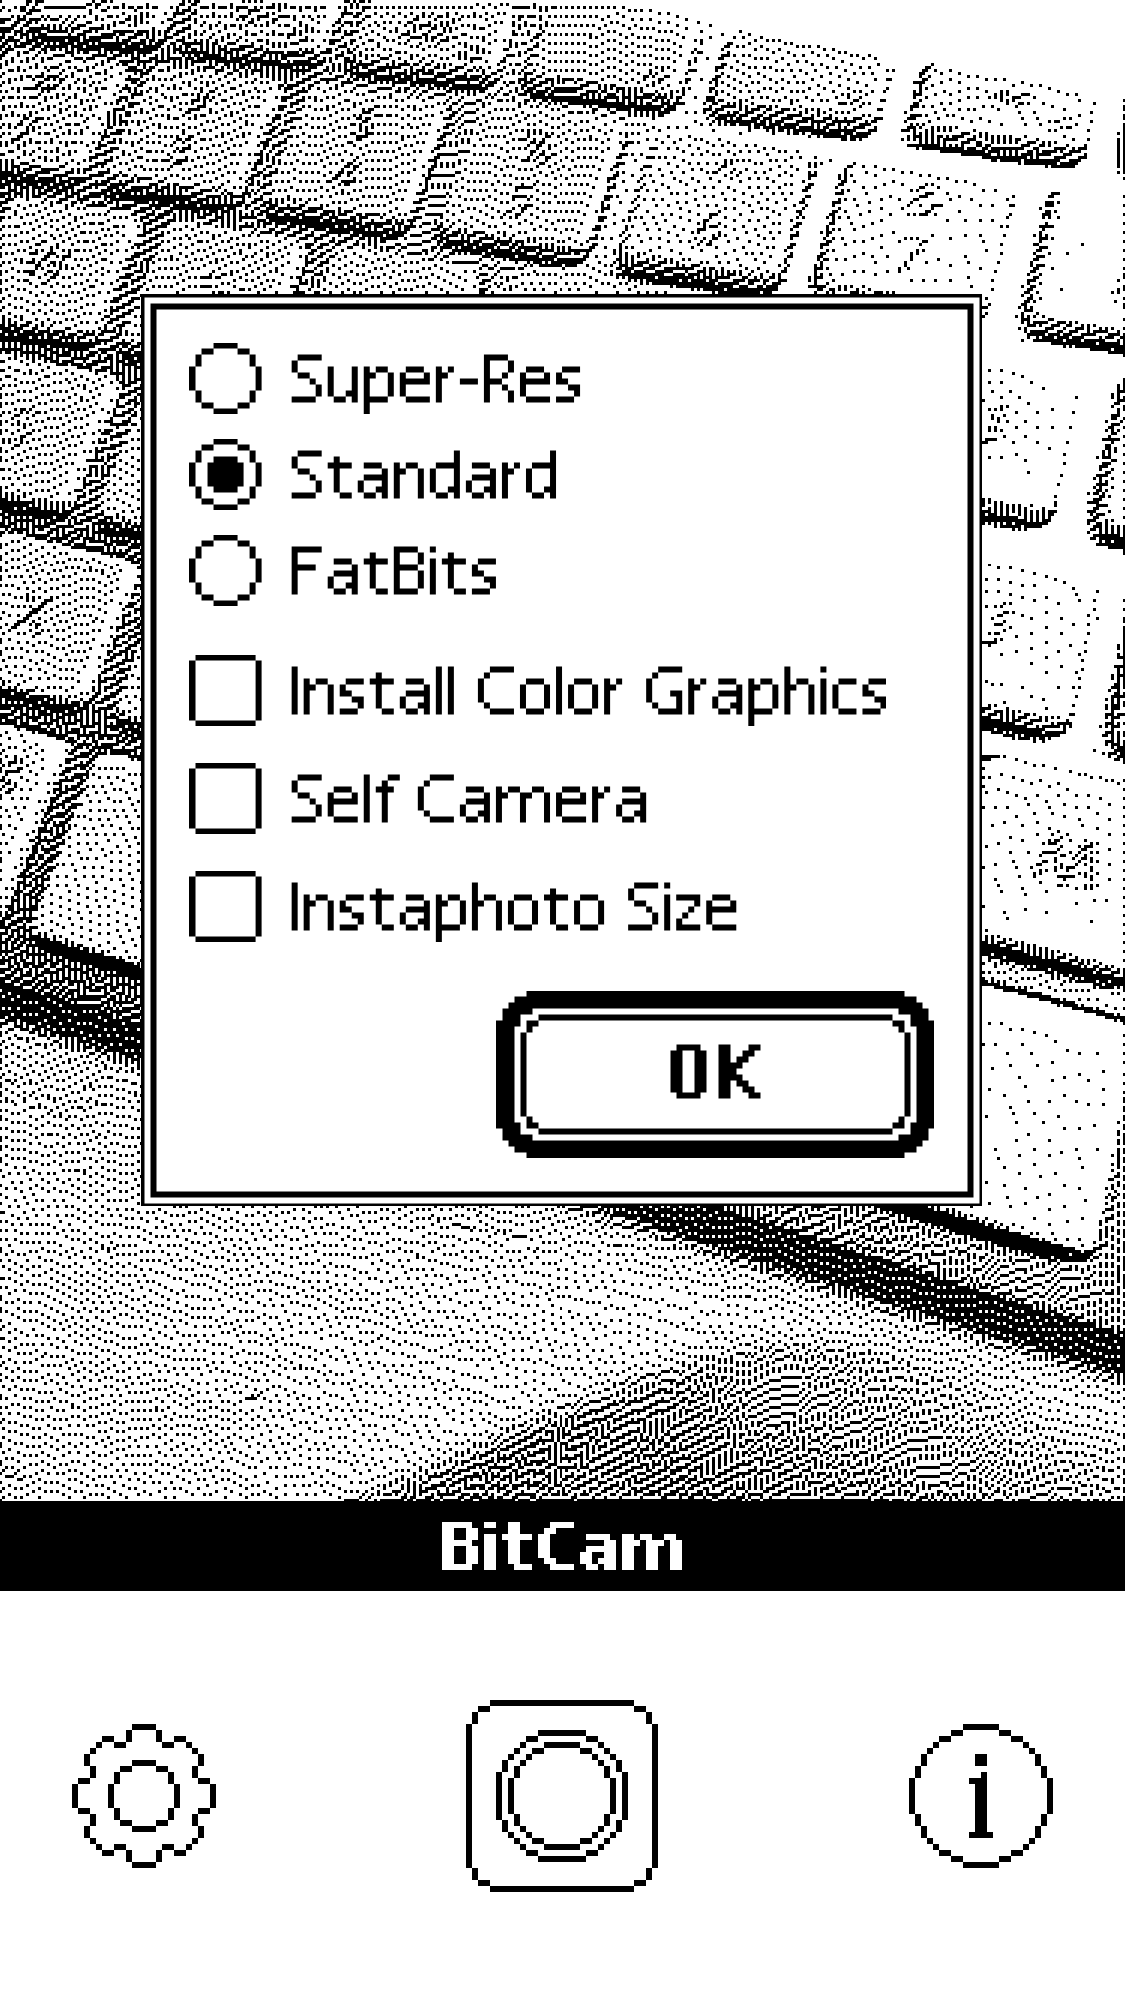 bitcam iPhone camera